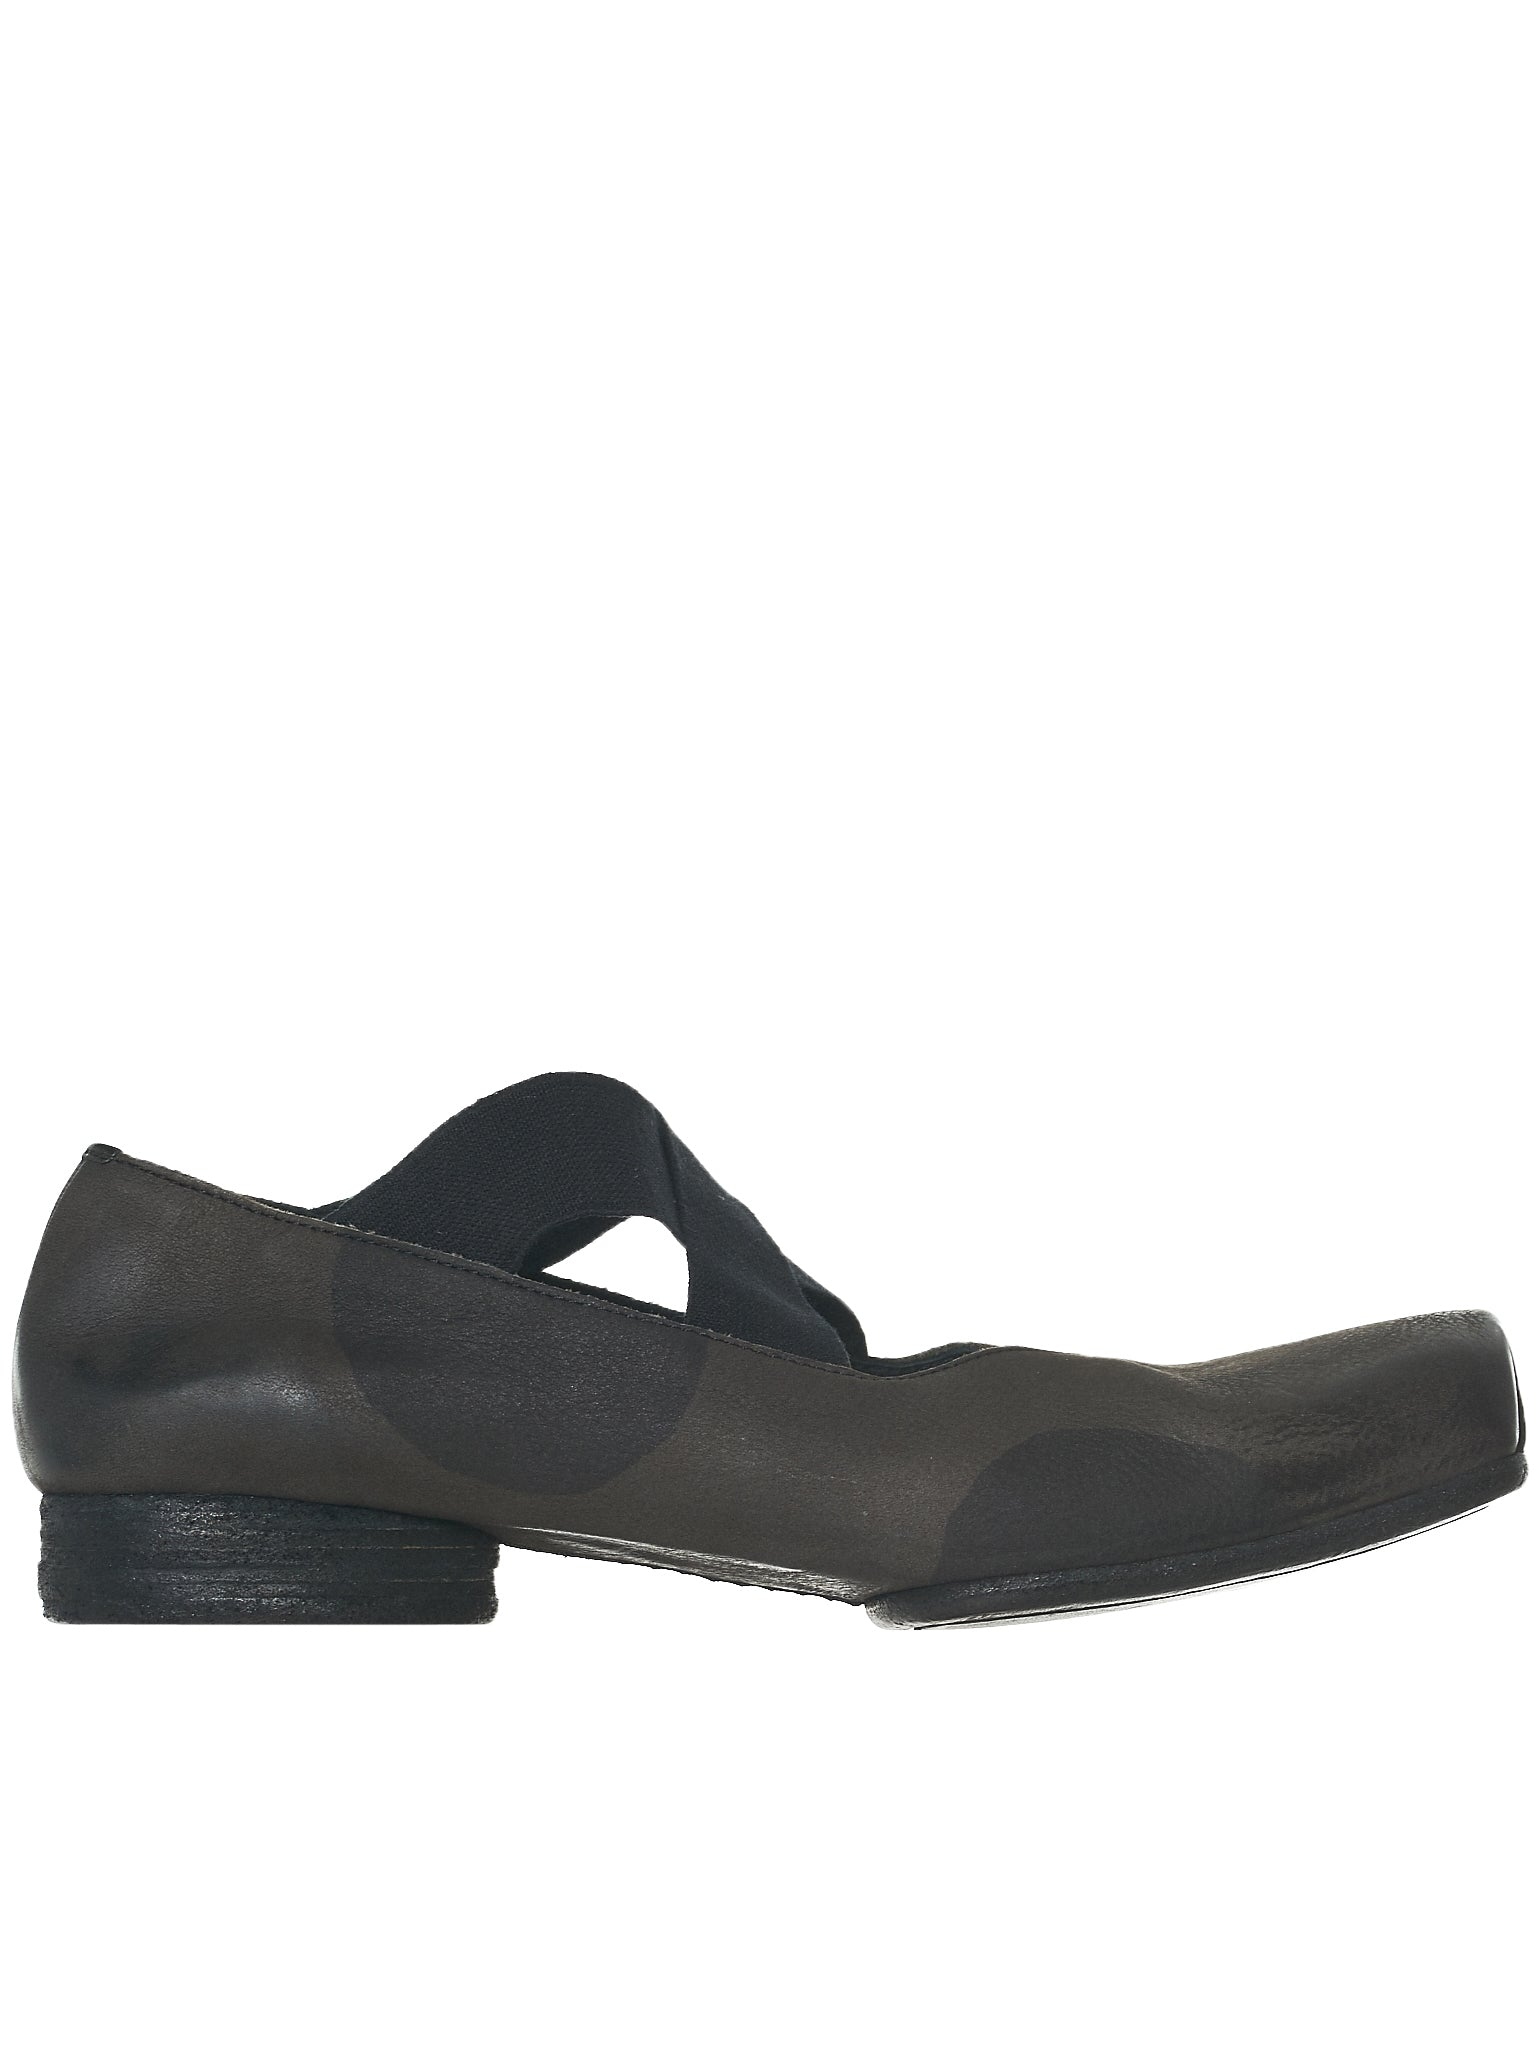 Uma Wang Ballet Shoes - Hlorenzo Front